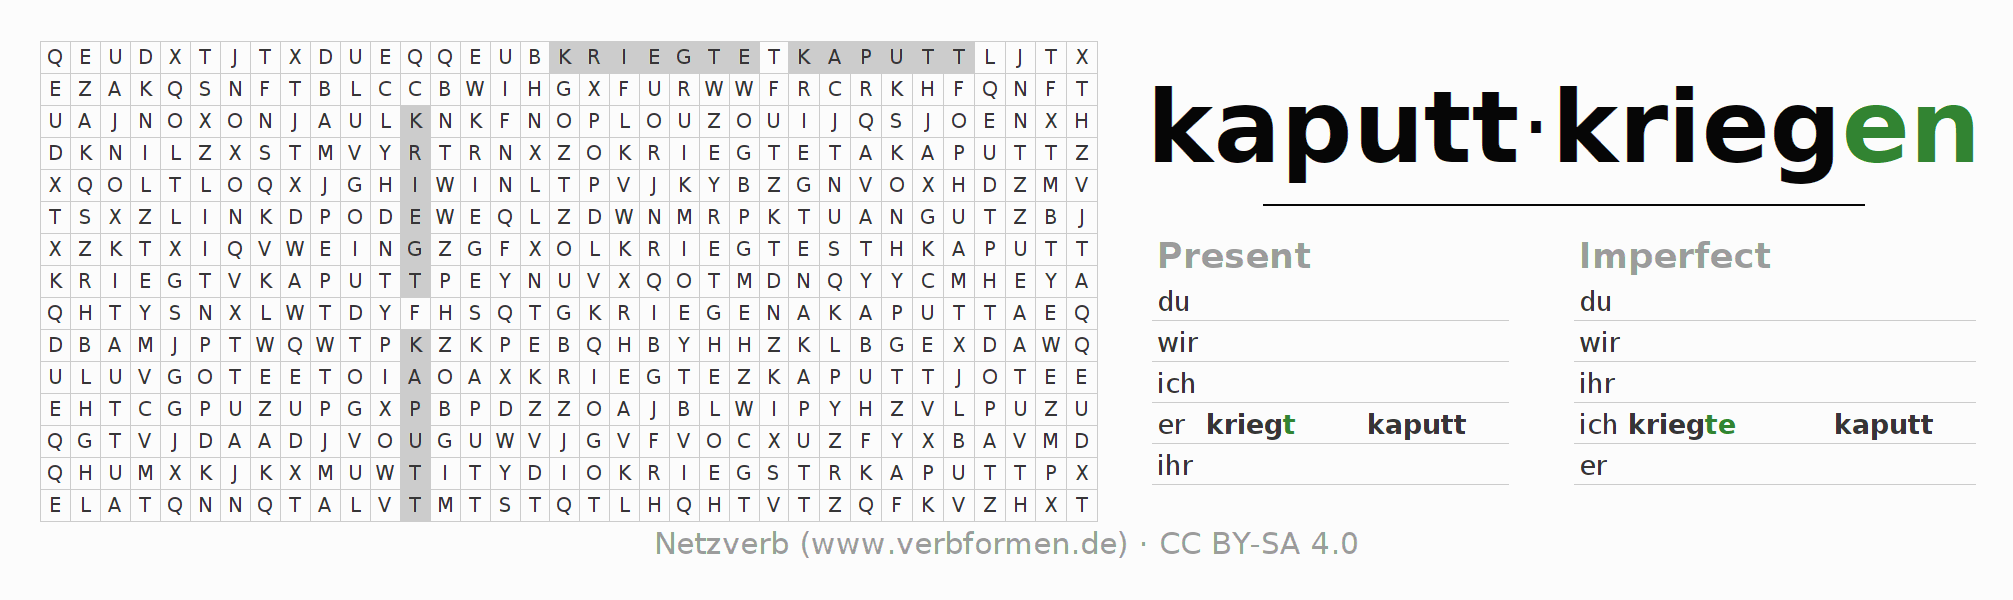 Word search puzzle for the conjugation of the verb kaputtkriegen